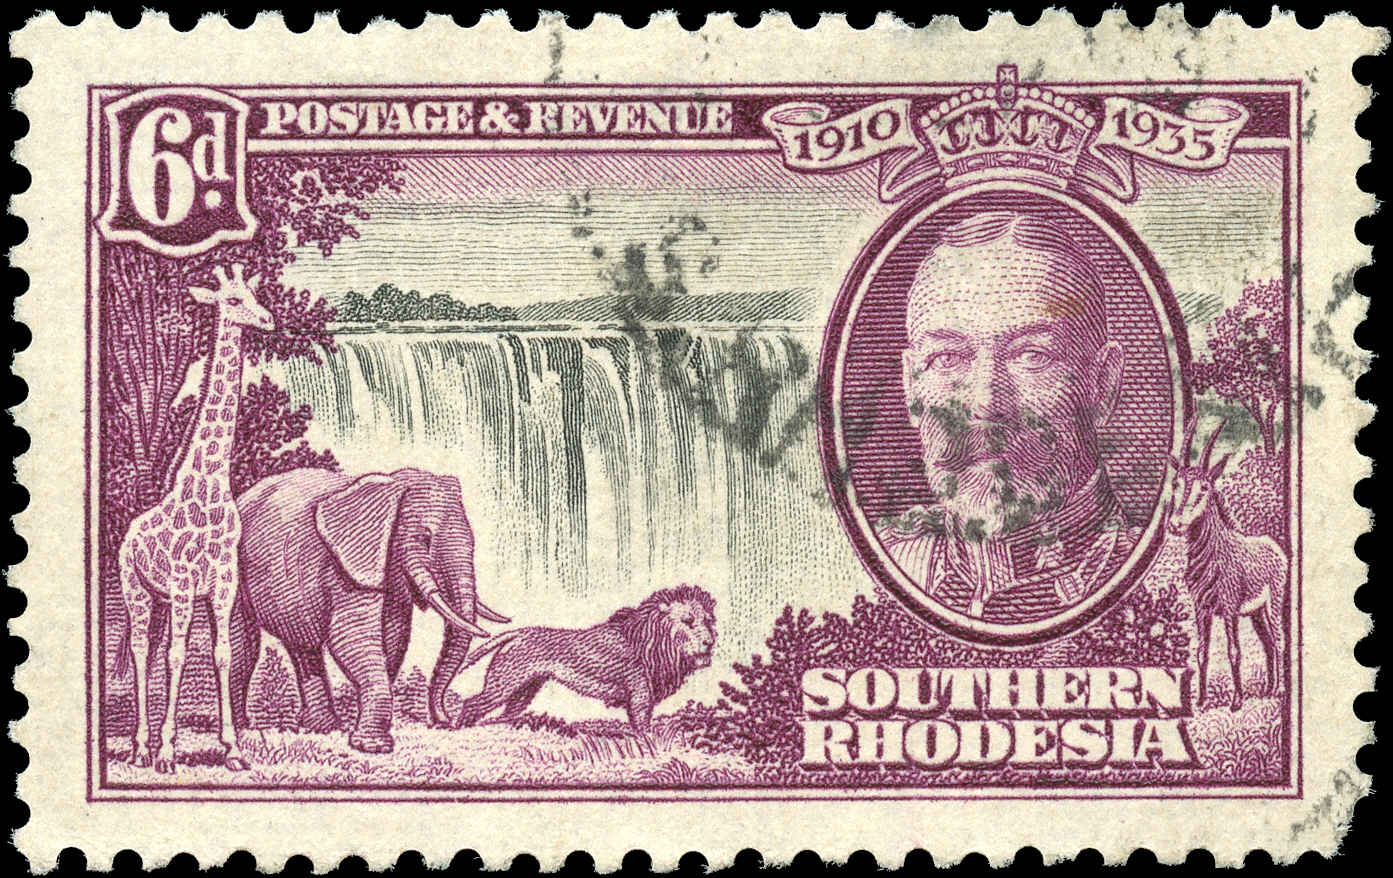 Southern Rhodesia, ##36, VF, Used